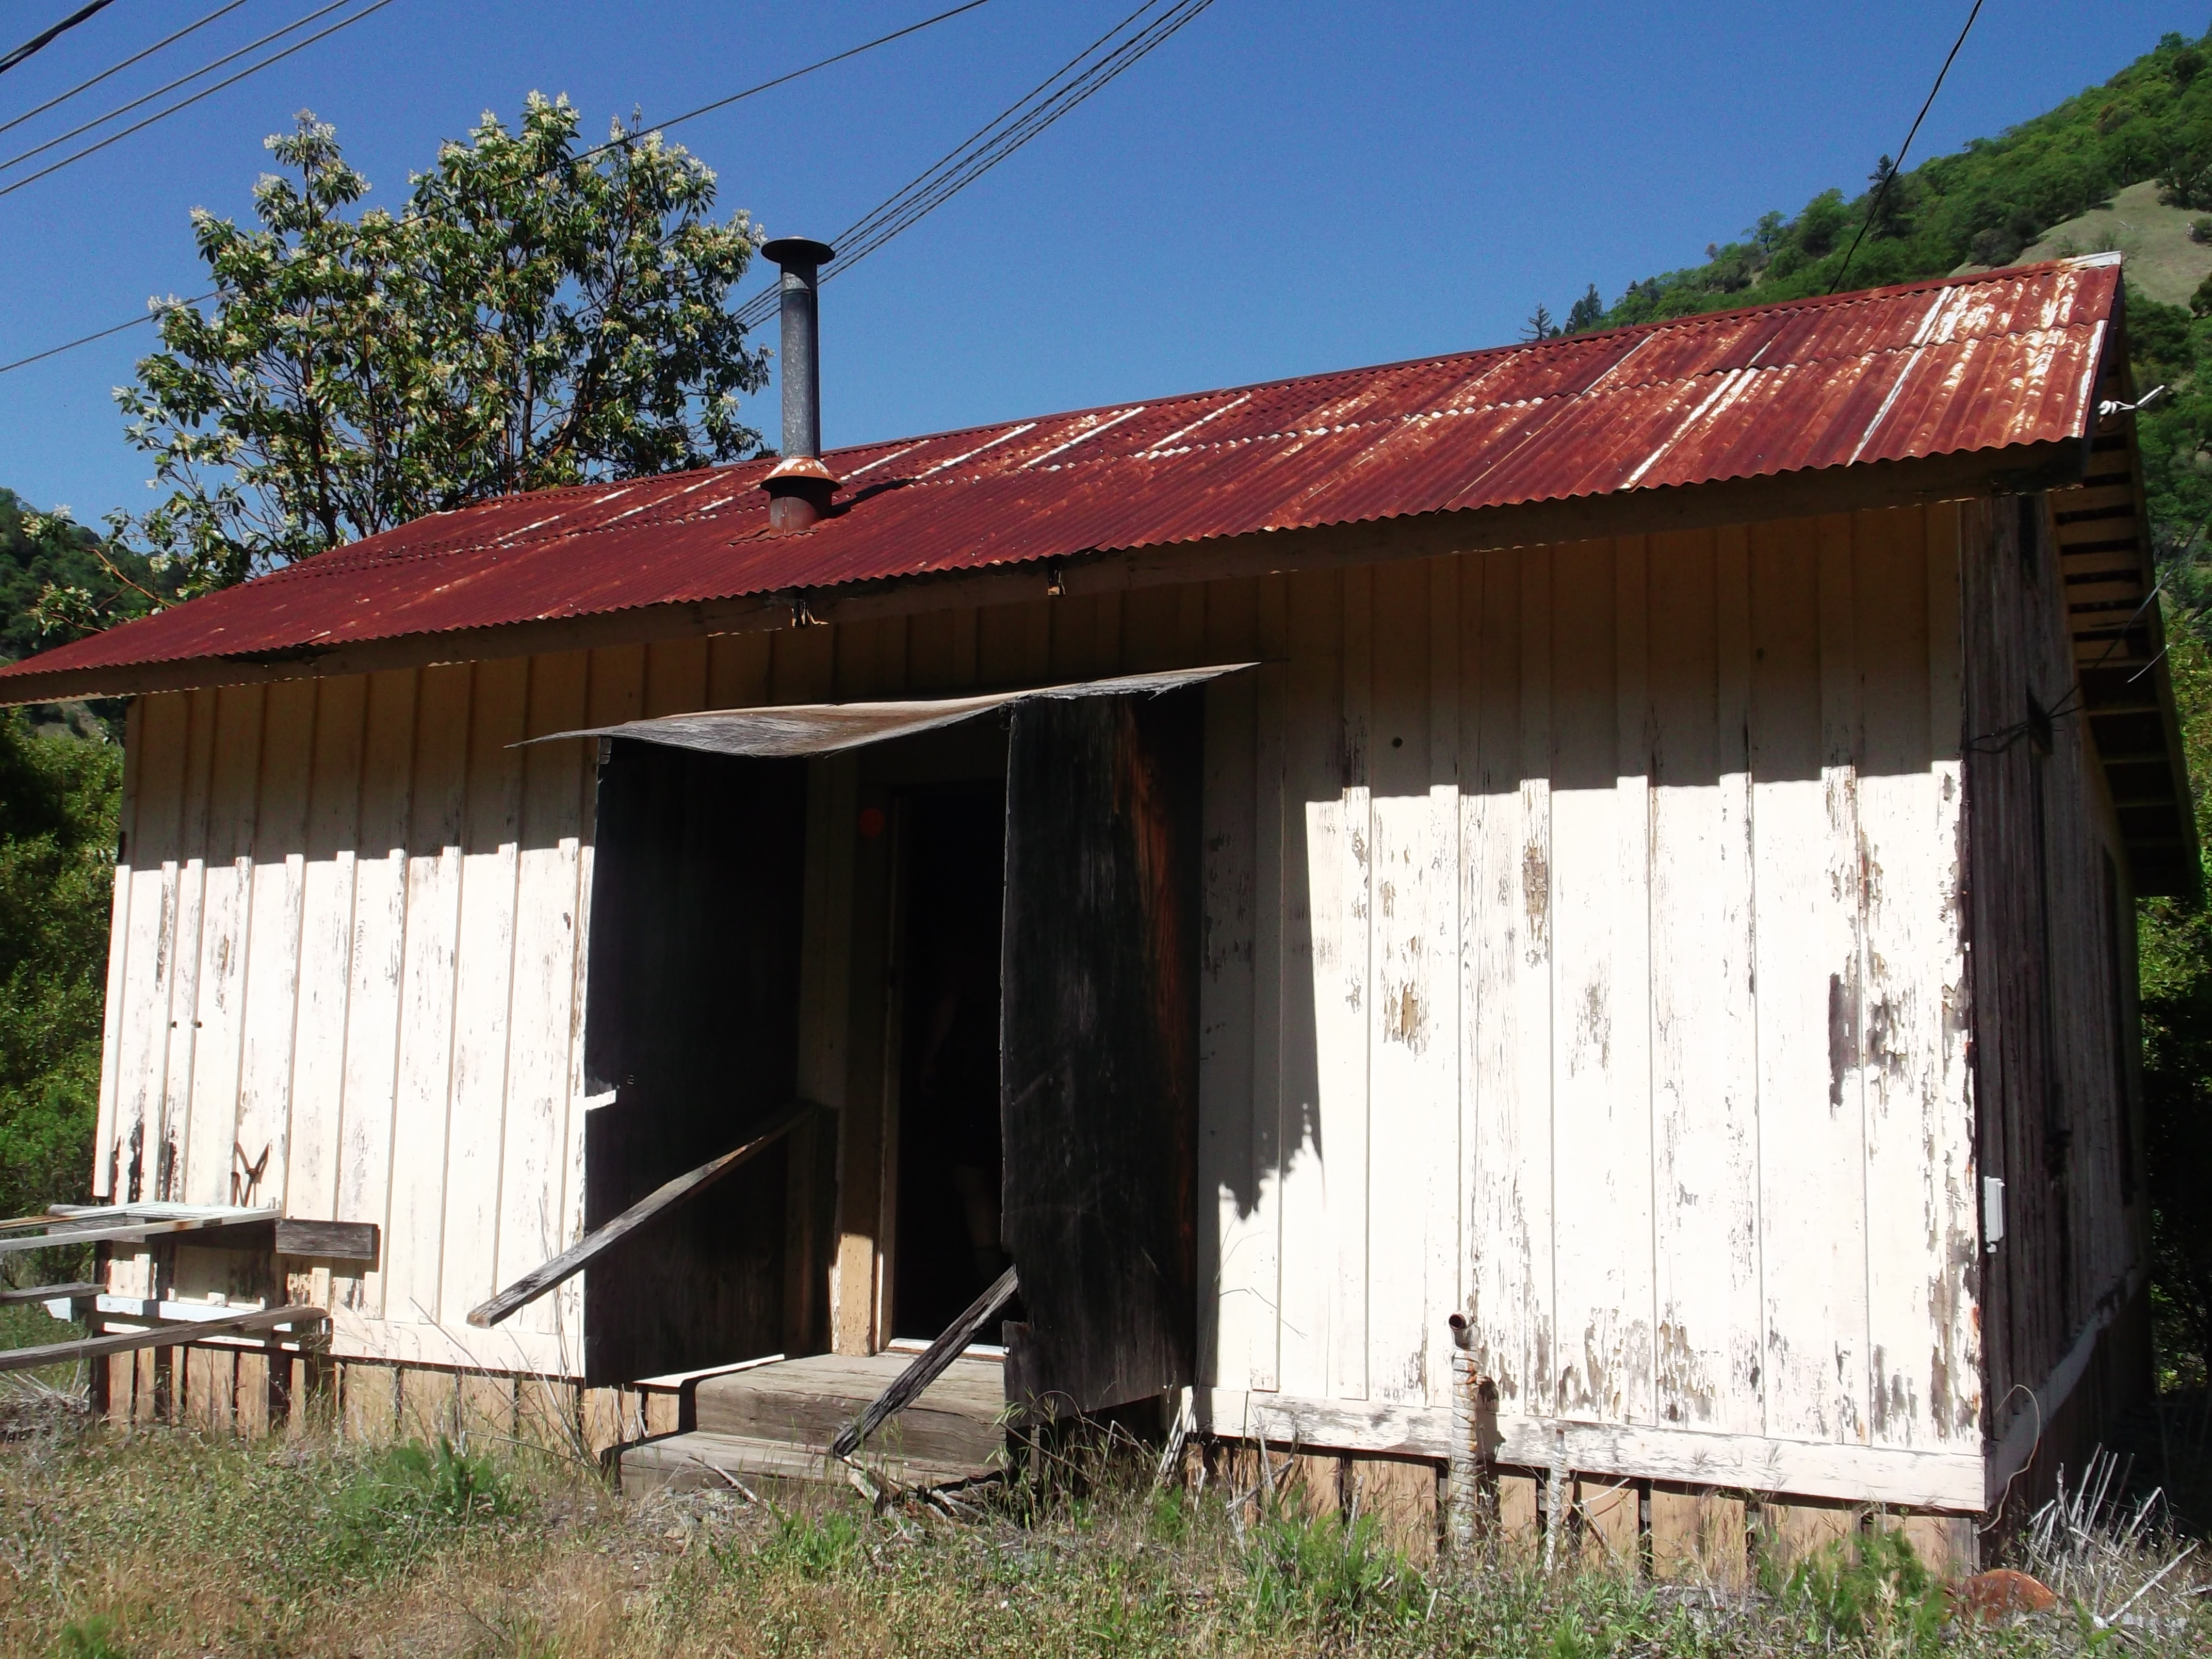 Once upon a time this ramshackle affair would have passed for a train station. (photo by D. Speredelozzi)